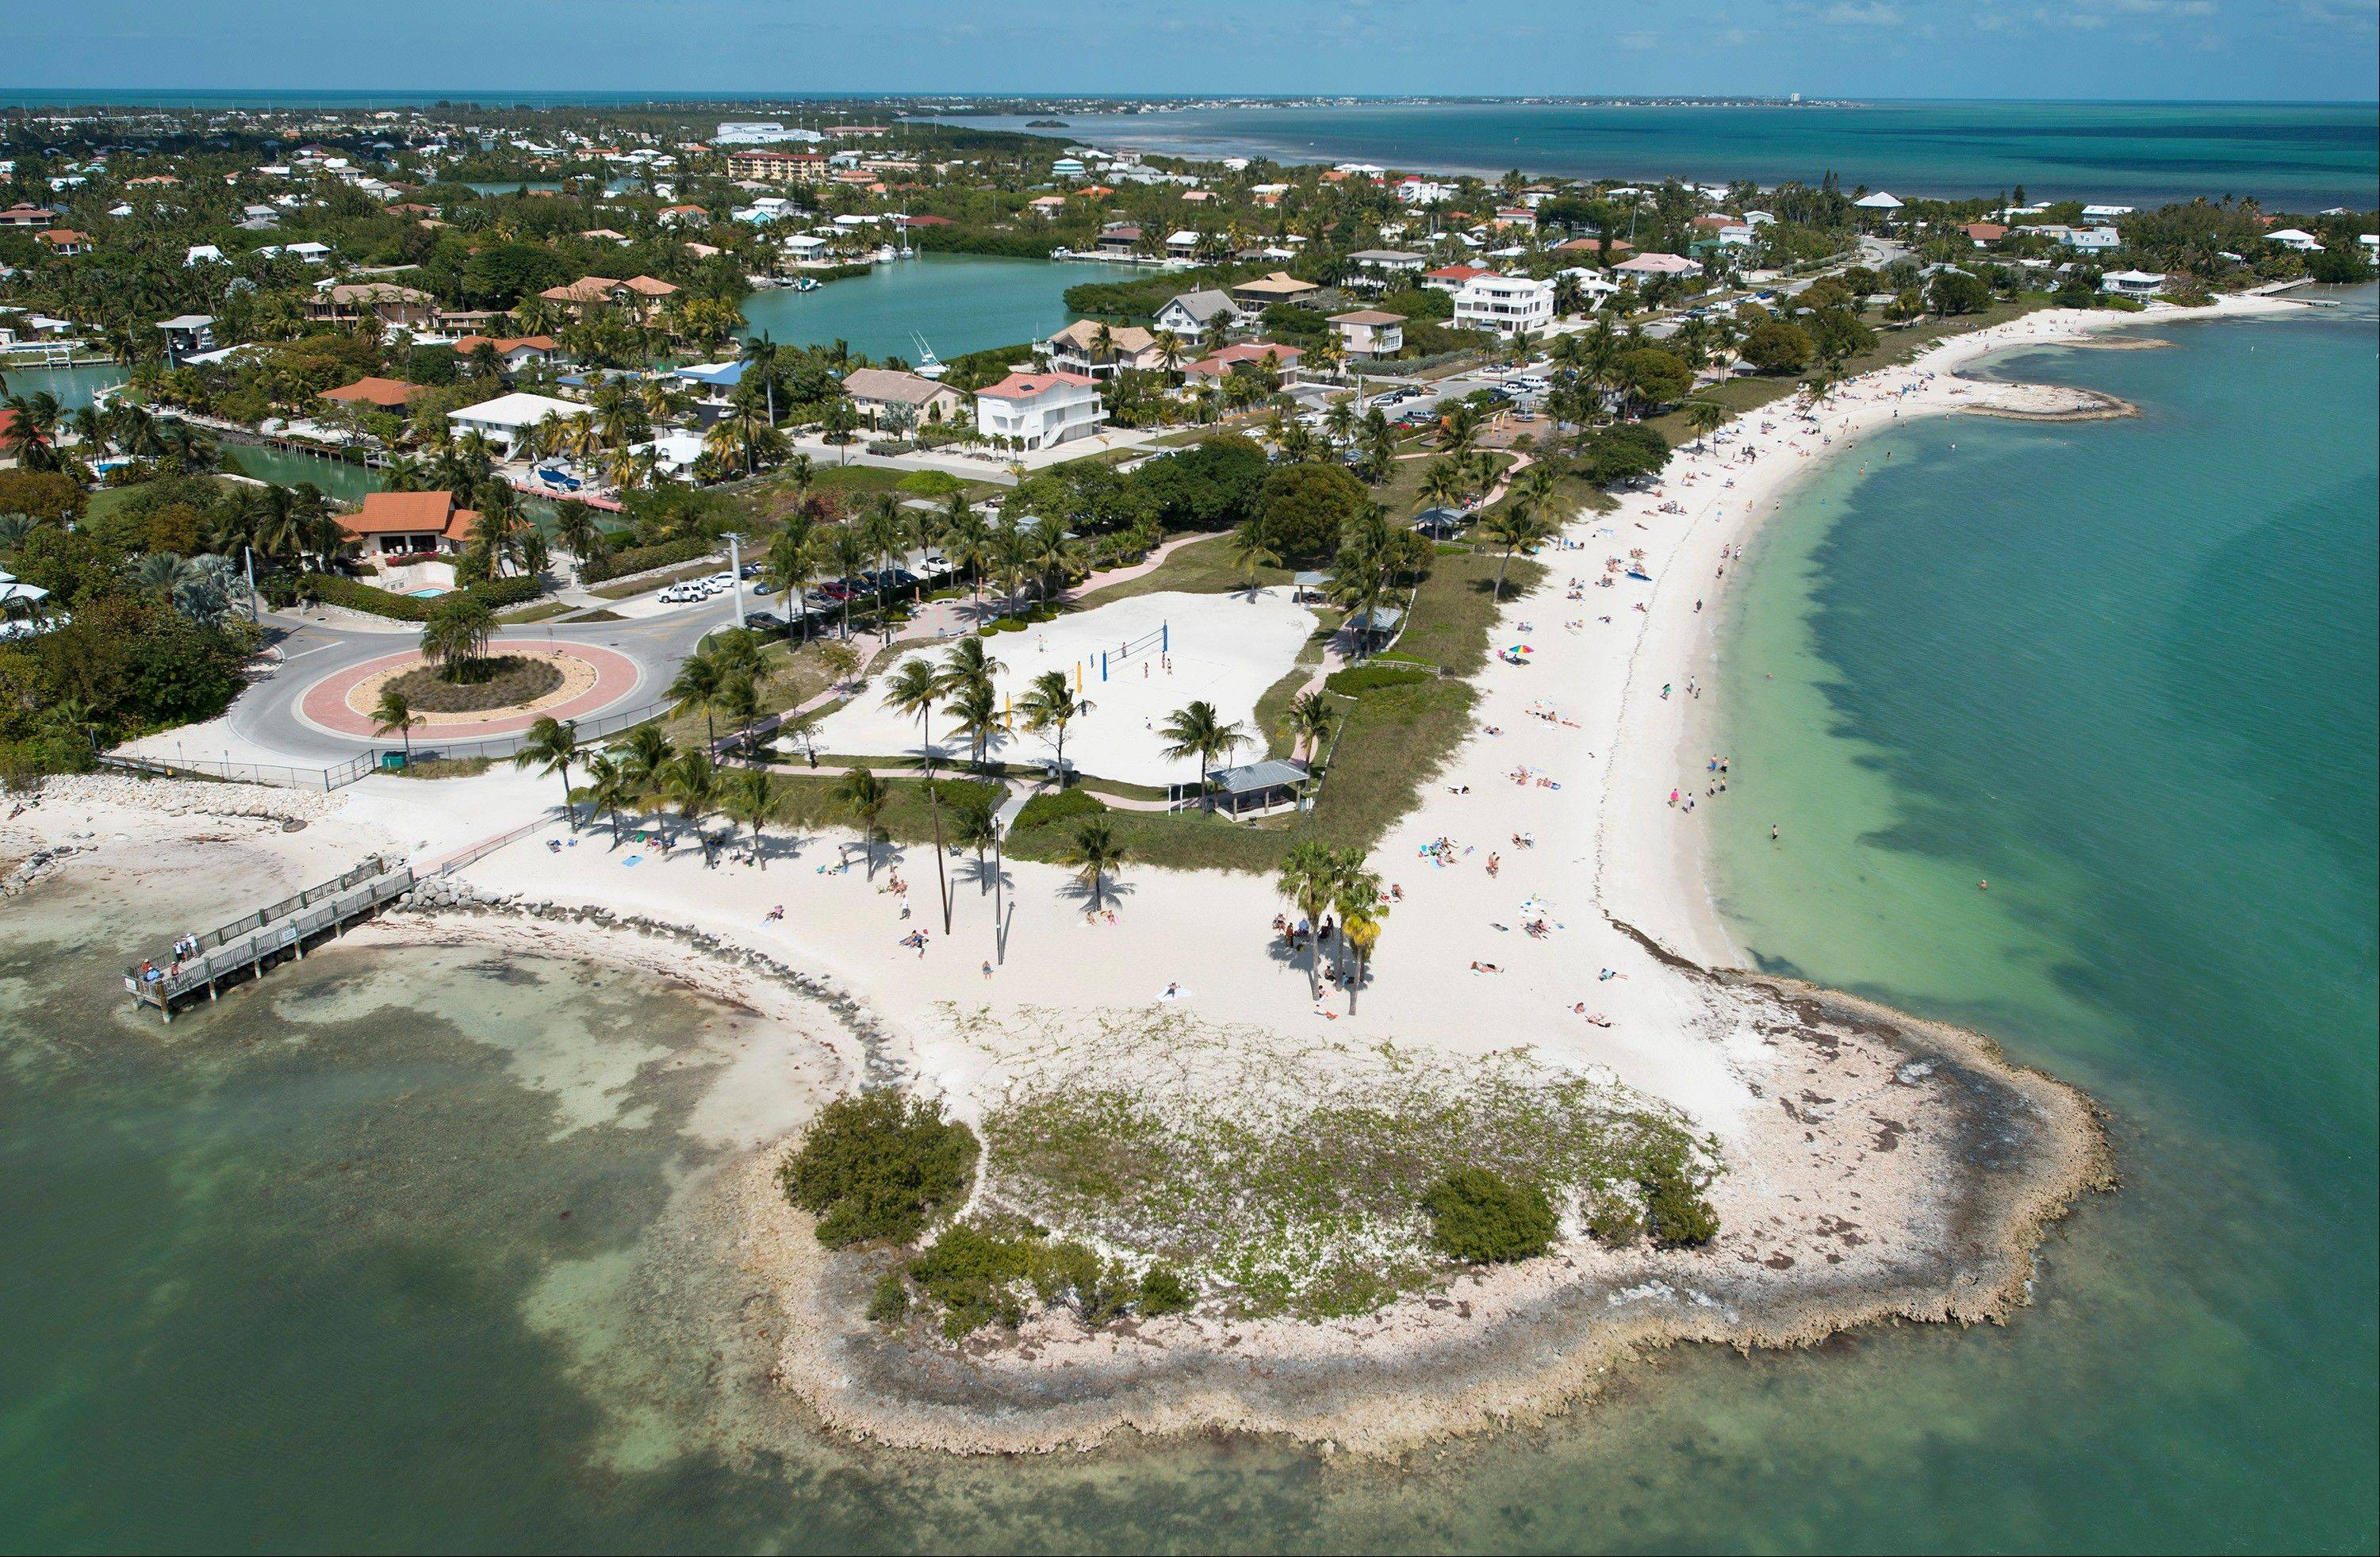 Florida Keys residents and visitors enjoy Sombrero Beach Park in Marathon, Fla. The free-admission park includes volleyball courts, picnic pavilions, playground equipment, restrooms and showers.